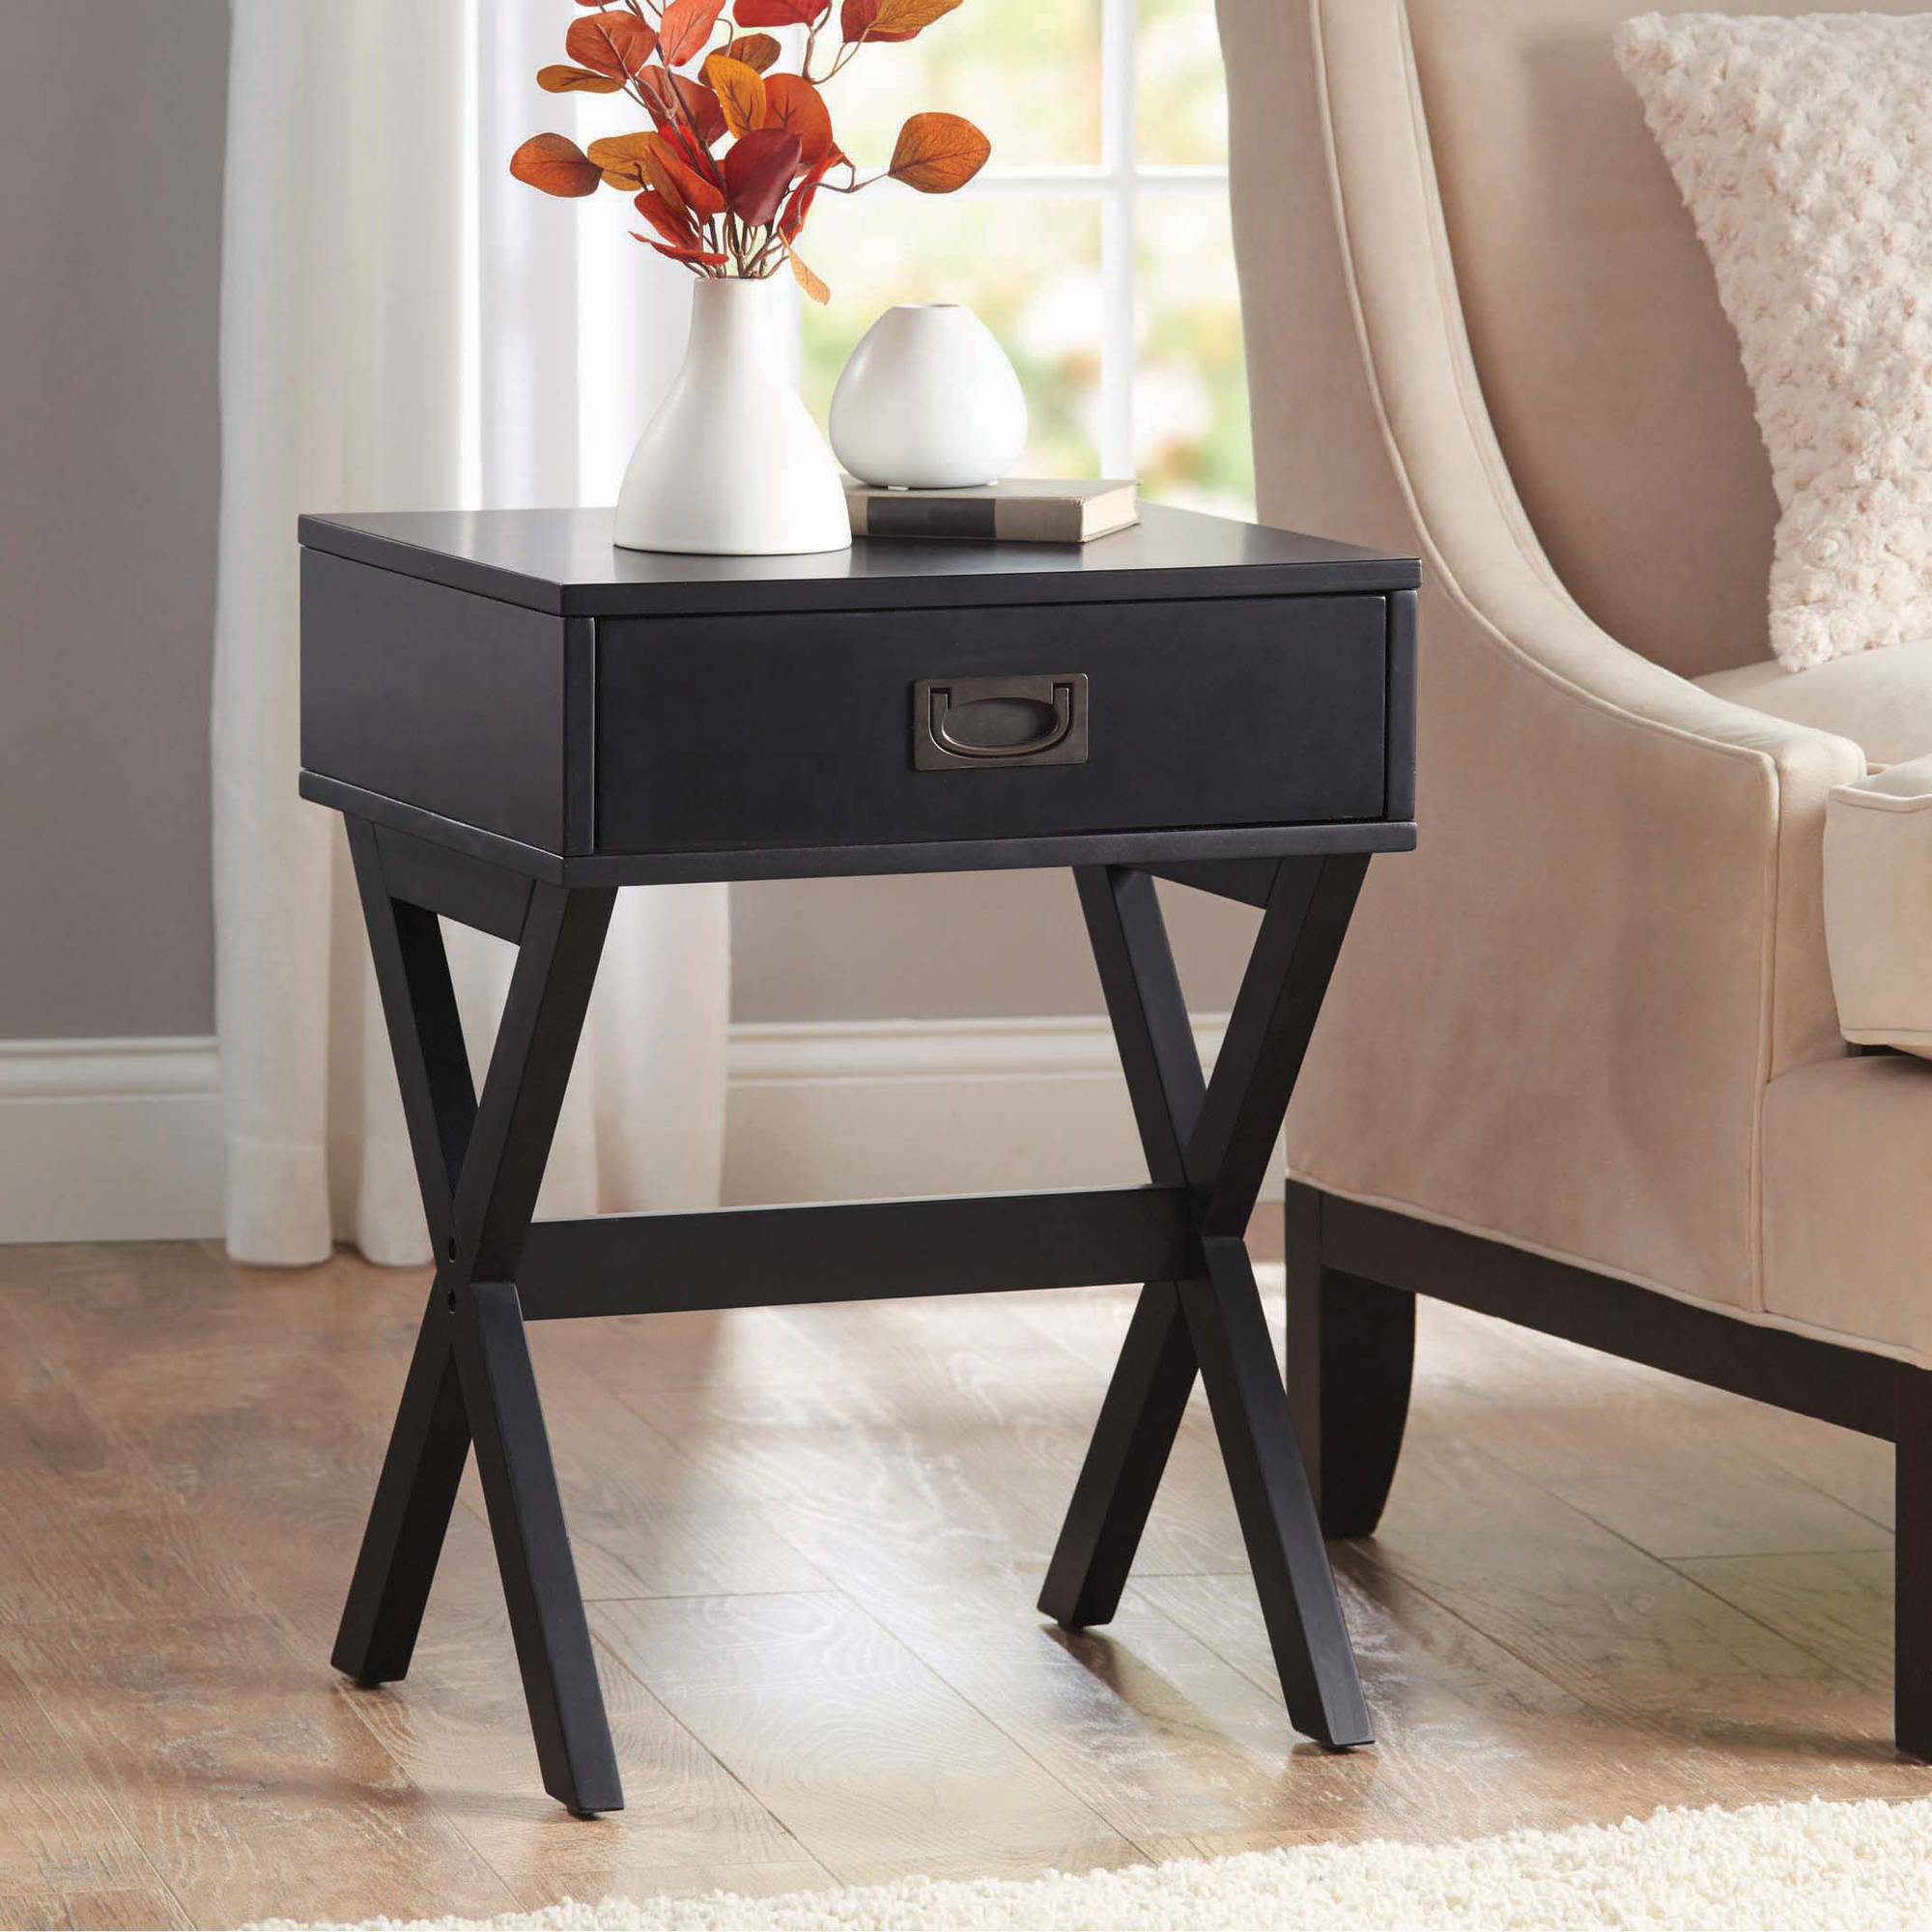 white chrome side table rustic nightstands furnisher moroccan nightstand navy bedroom fitments pallet decor american signature black accent rectangle drop leaf carpet threshold